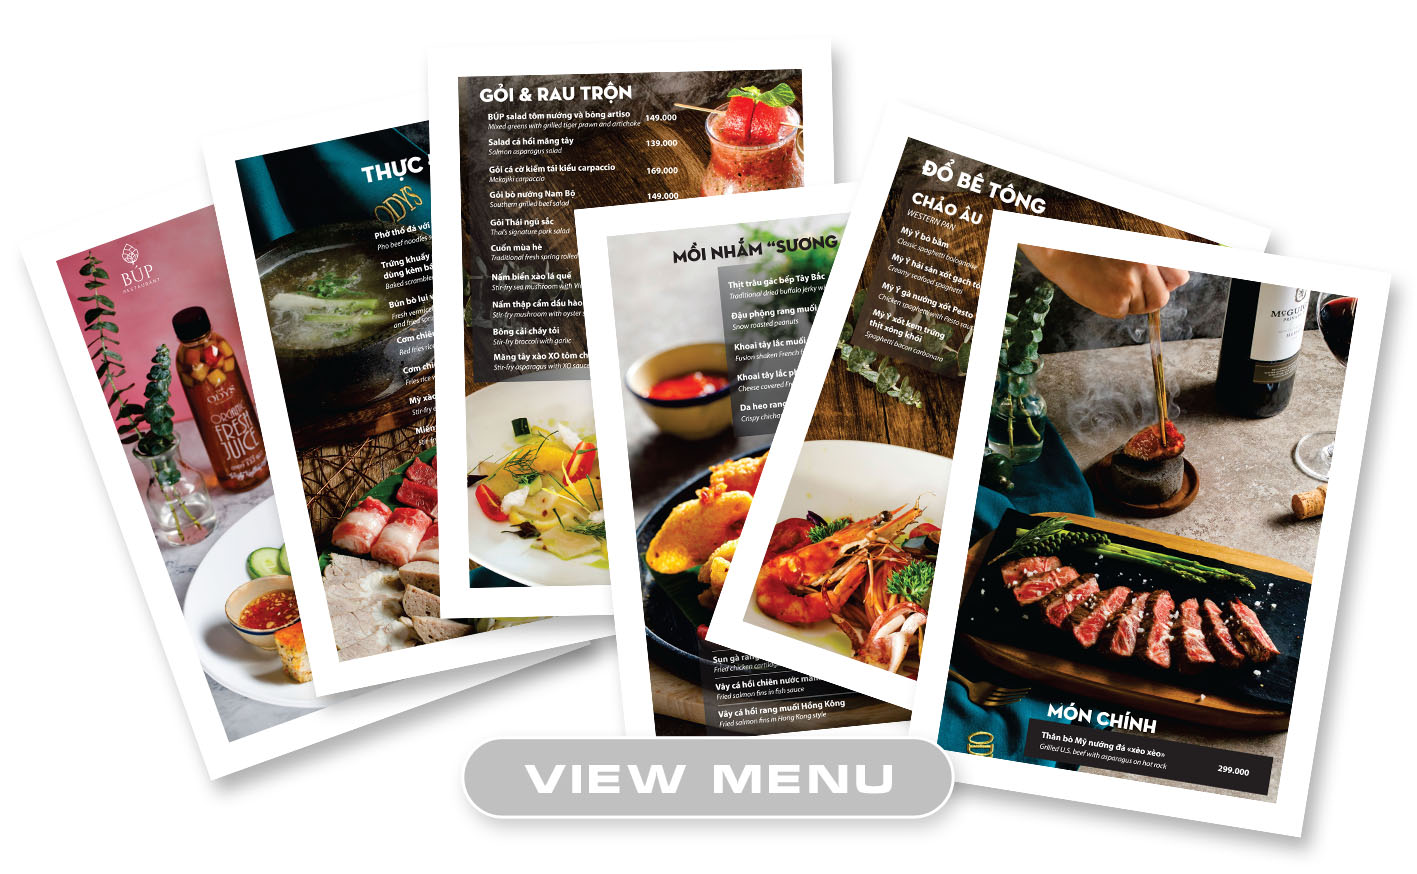 Taste the world with the new menu at Bup Restaurant